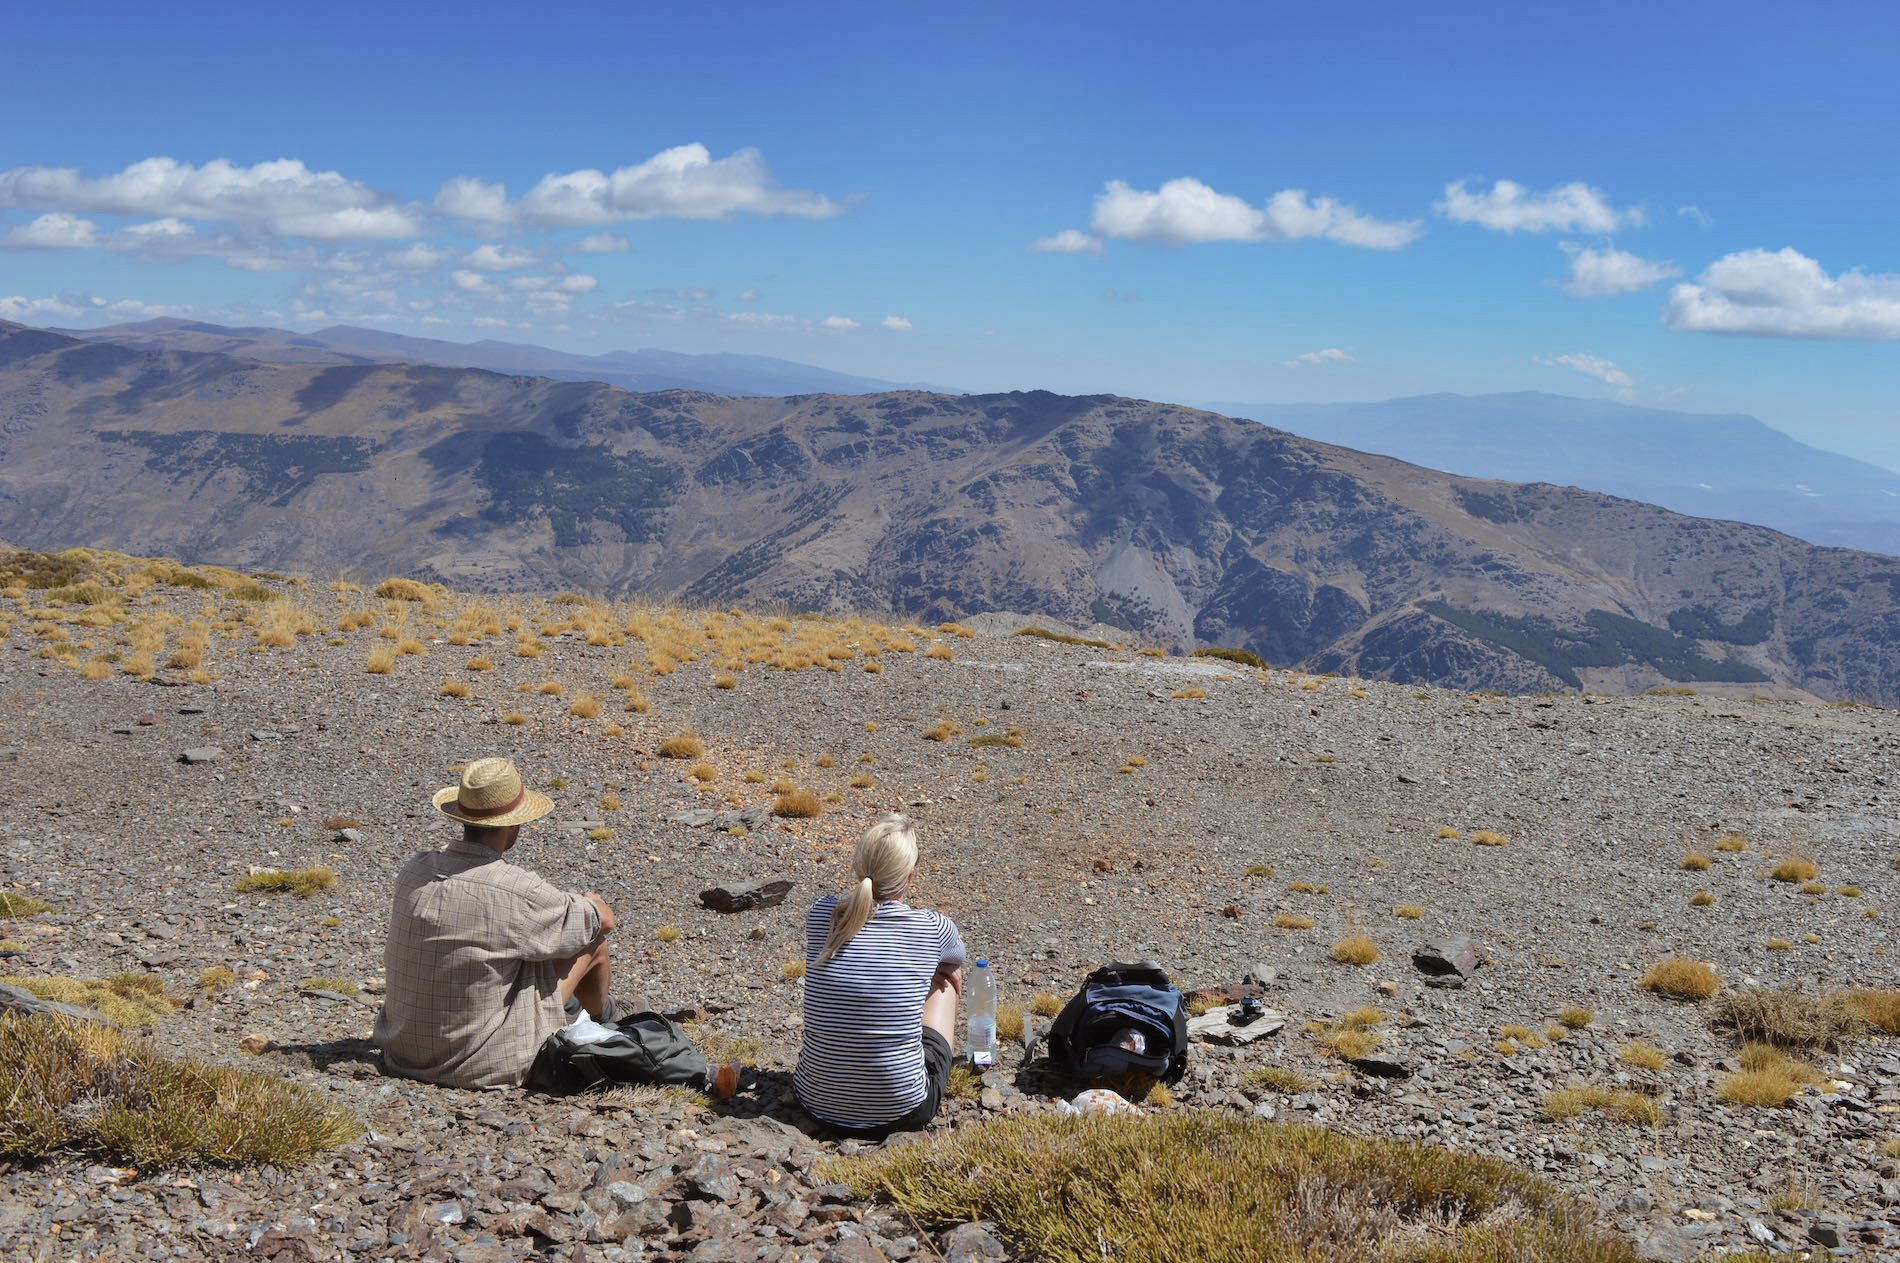 My partner Amanda and Jaime (from the fabulous  La Placeta  in Portugos, southern Spain)quietly sitting, looking over the many mountains and out towards the coast of North Africa as part of our trek from Portugos to Trevelez.